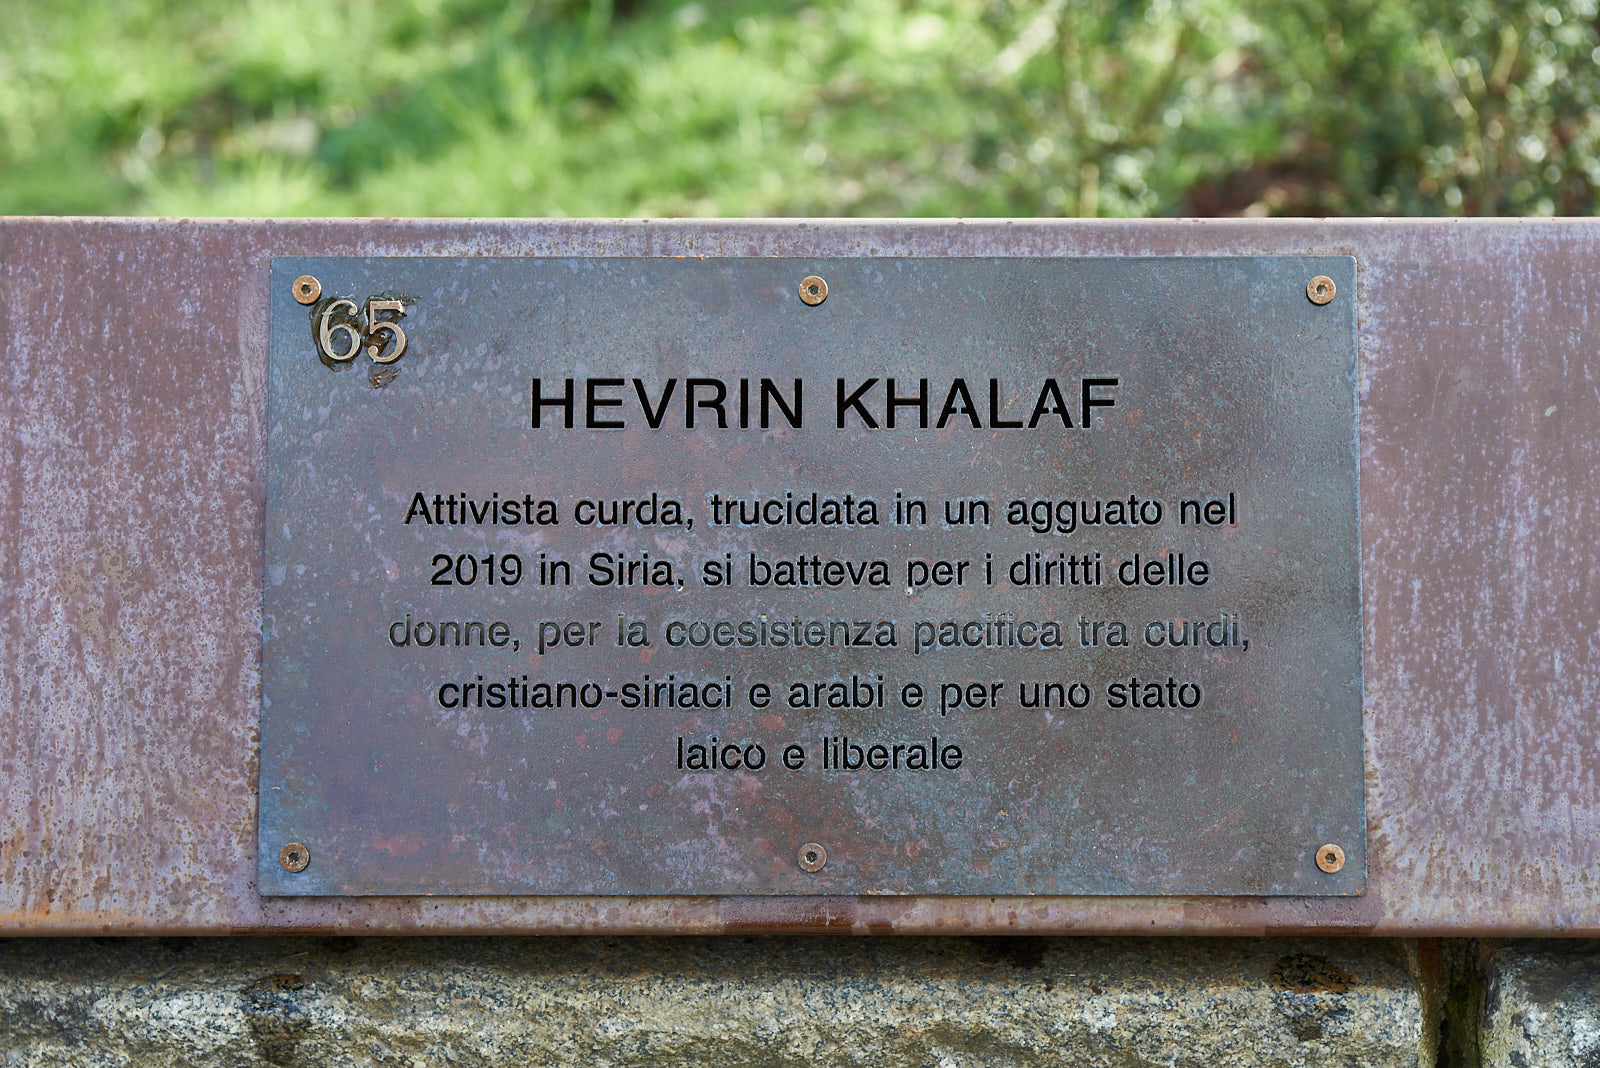 Plaque dedicated to Hevrin Khalaf